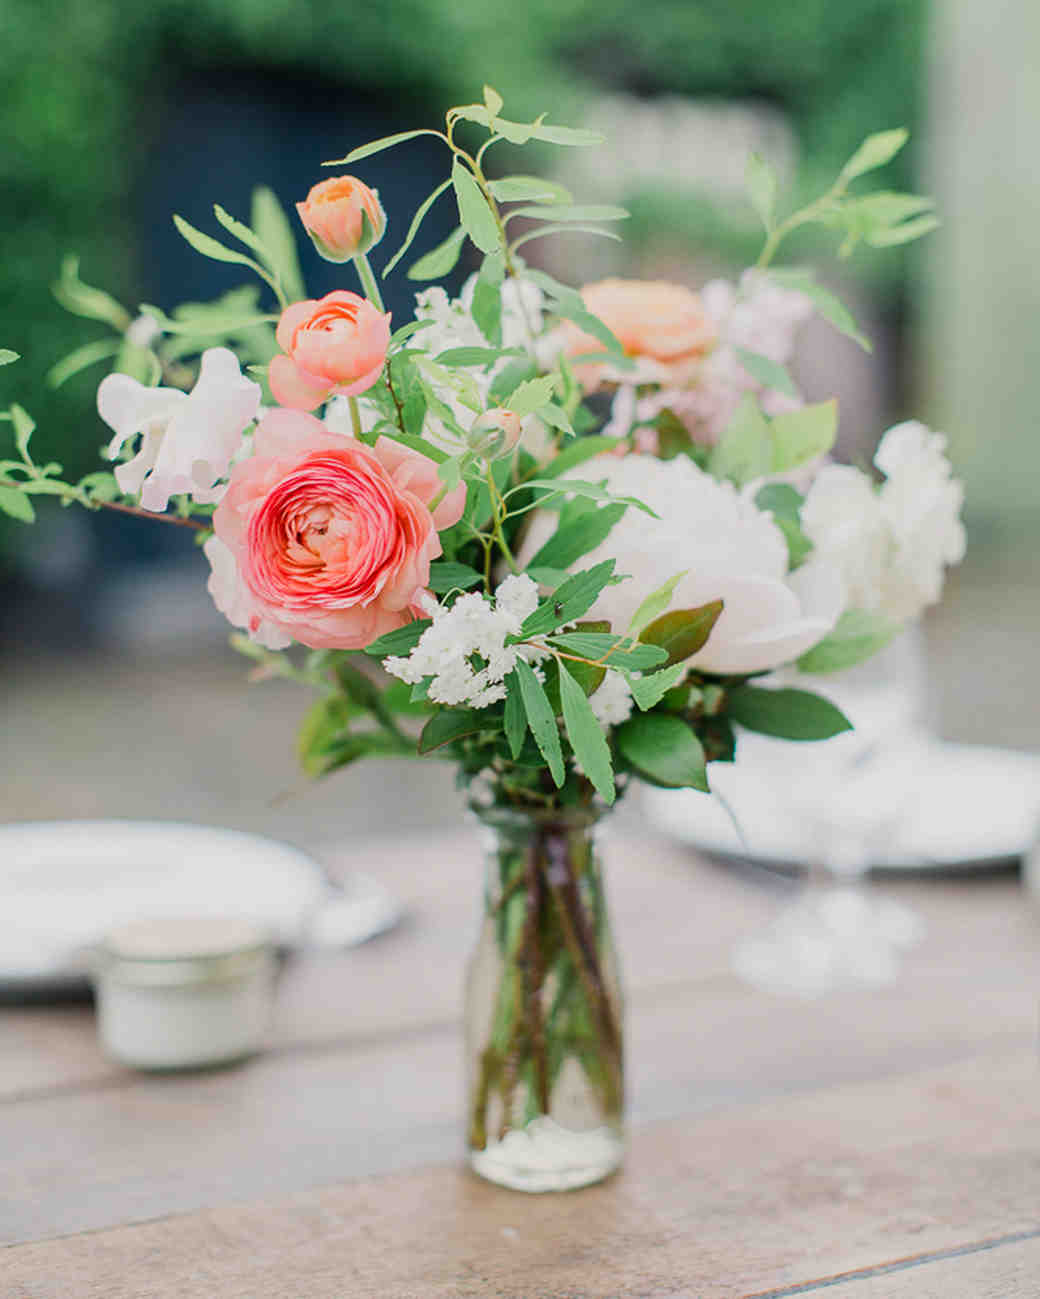 Wedding Centerpieces: 25 Bridal Shower Centerpieces The Bride-to-Be Will Love